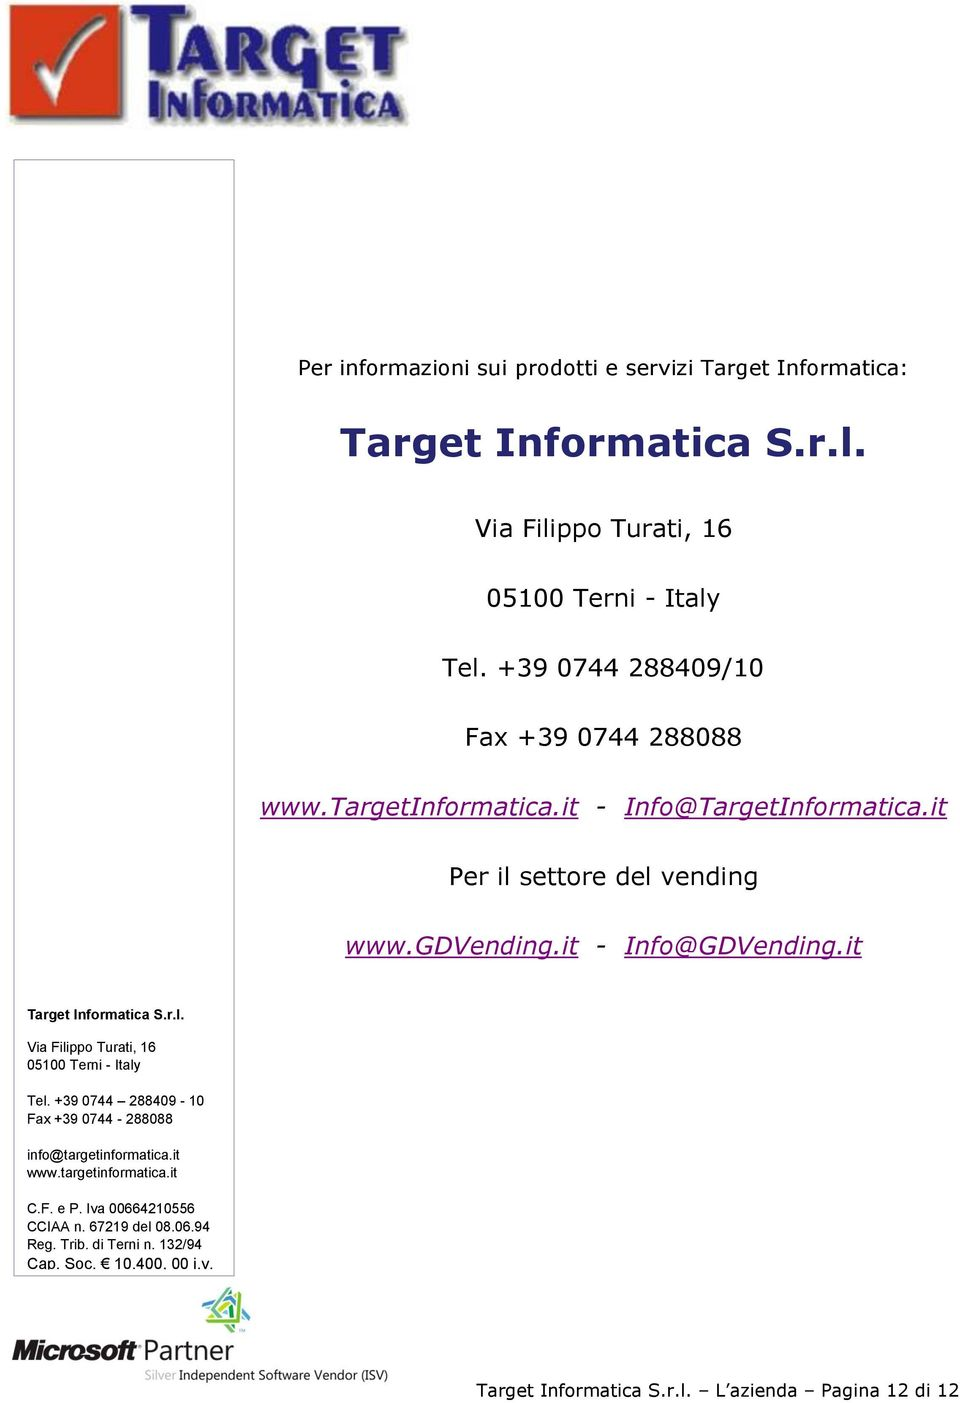 targetinformatica.it - Info@TargetInformatica.